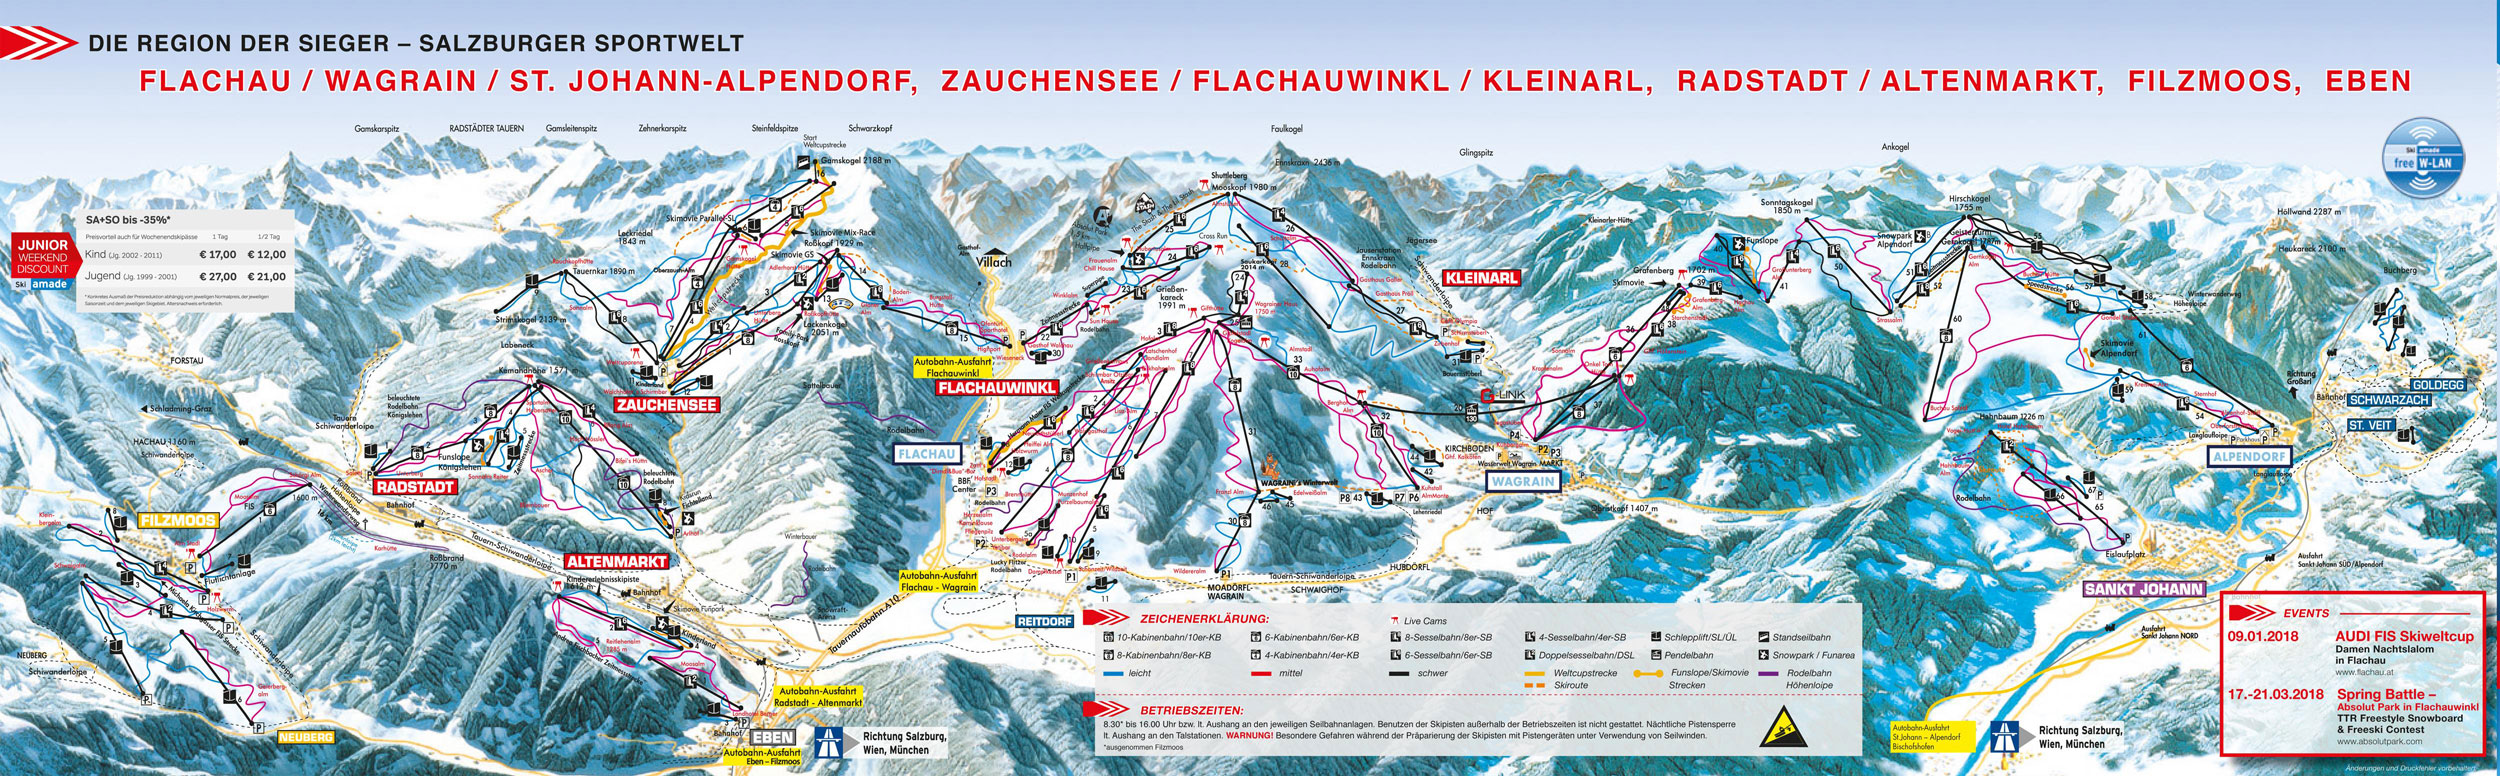 Ski Trips to Salzburger Sportwelt  Austria together with Flachau  Austria  map   nona also Flachau Resort and Ac modation location map   J2Ski moreover Holiday in Flachau  Salzburger Sportwelt  Ski amadé likewise Event Area of the Audi FIS Las Night Race in Flachau  Flachau also Flachau hotels  Flachau apartments in addition File Map at flachau  salzburg      Wikimedia  mons besides Flachau Resort and Ac modation location map   J2Ski together with Ausserraingut in Austria besides Maps  Weather  and Airports for Flachau  Austria furthermore  together with Cross Country Skiing Flachau • Nordic skiing • Tracks additionally  as well Skiing Flachau   ski holidays in Austria besides Flachau Resort and Ac modation location map   J2Ski likewise . on flachau austria map